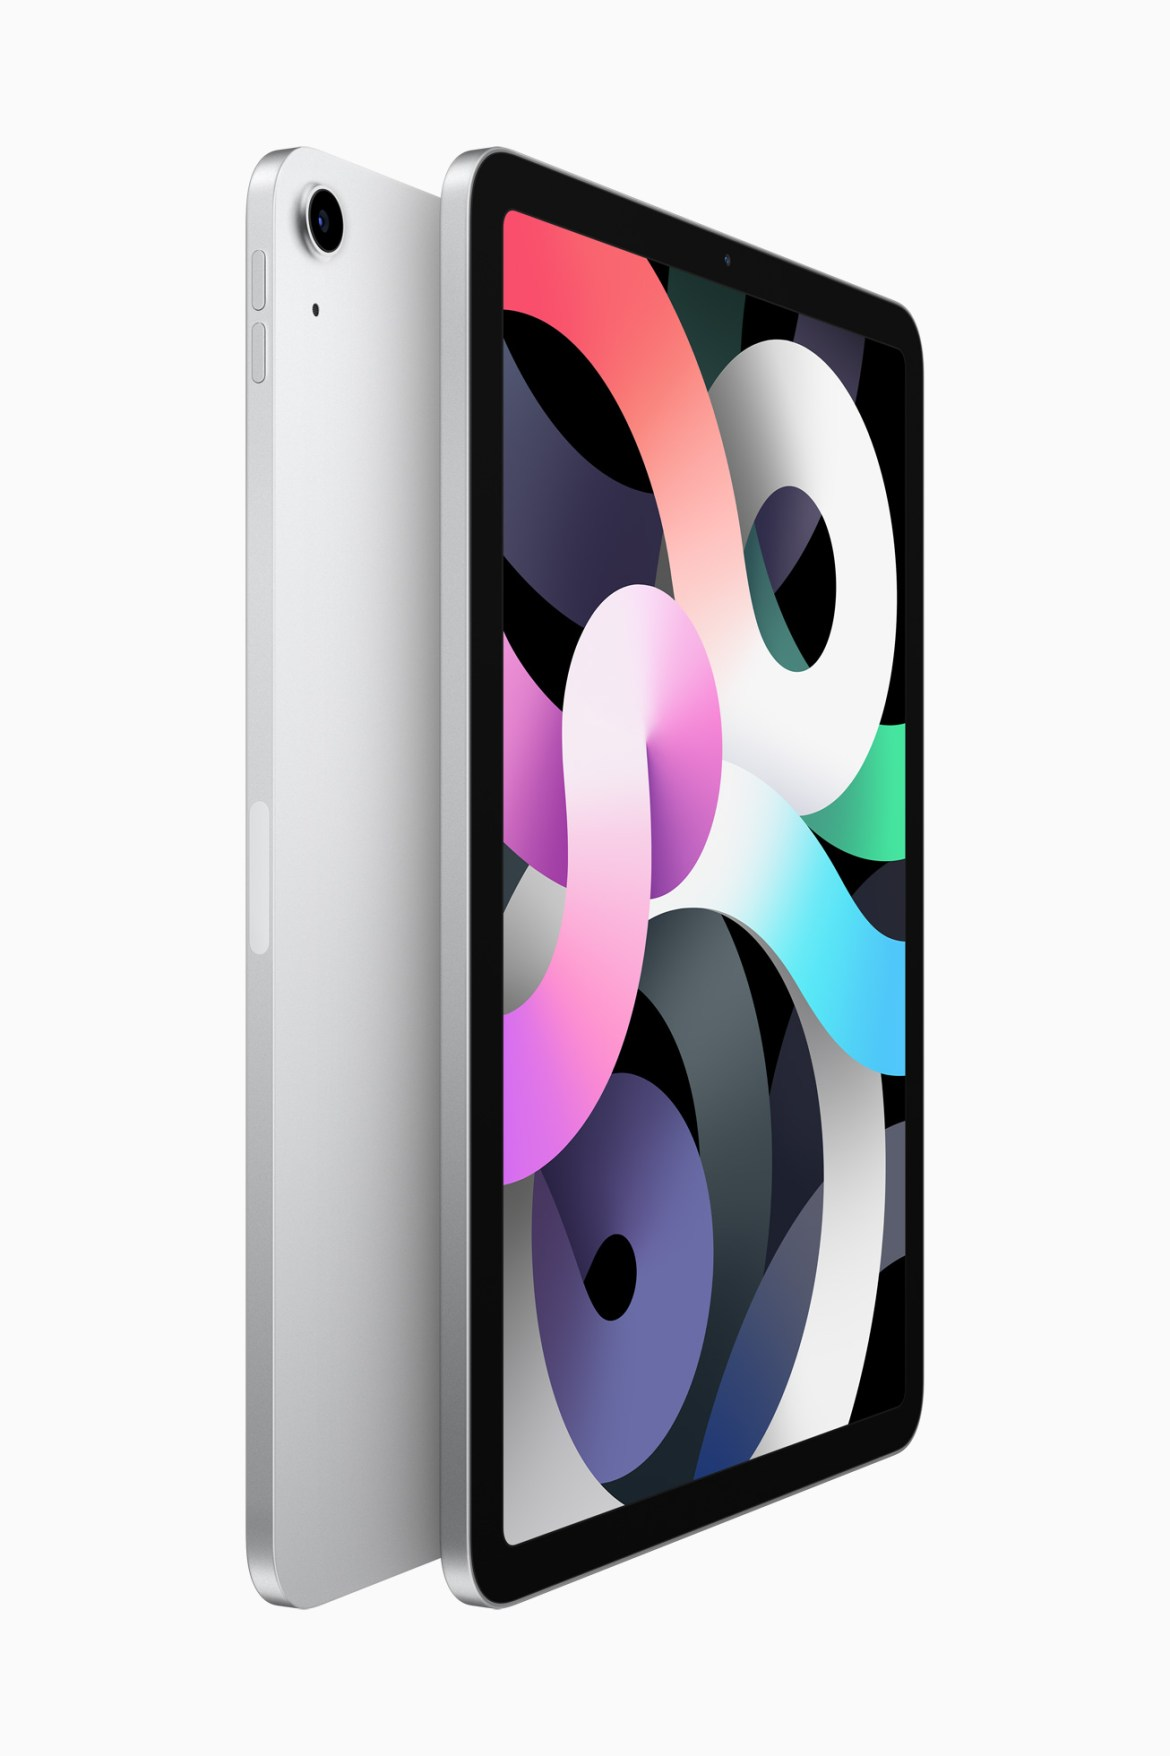 Apple Introducing Redesigned iPad Air 10.9-inch with Advanced A14 Bionic Chip